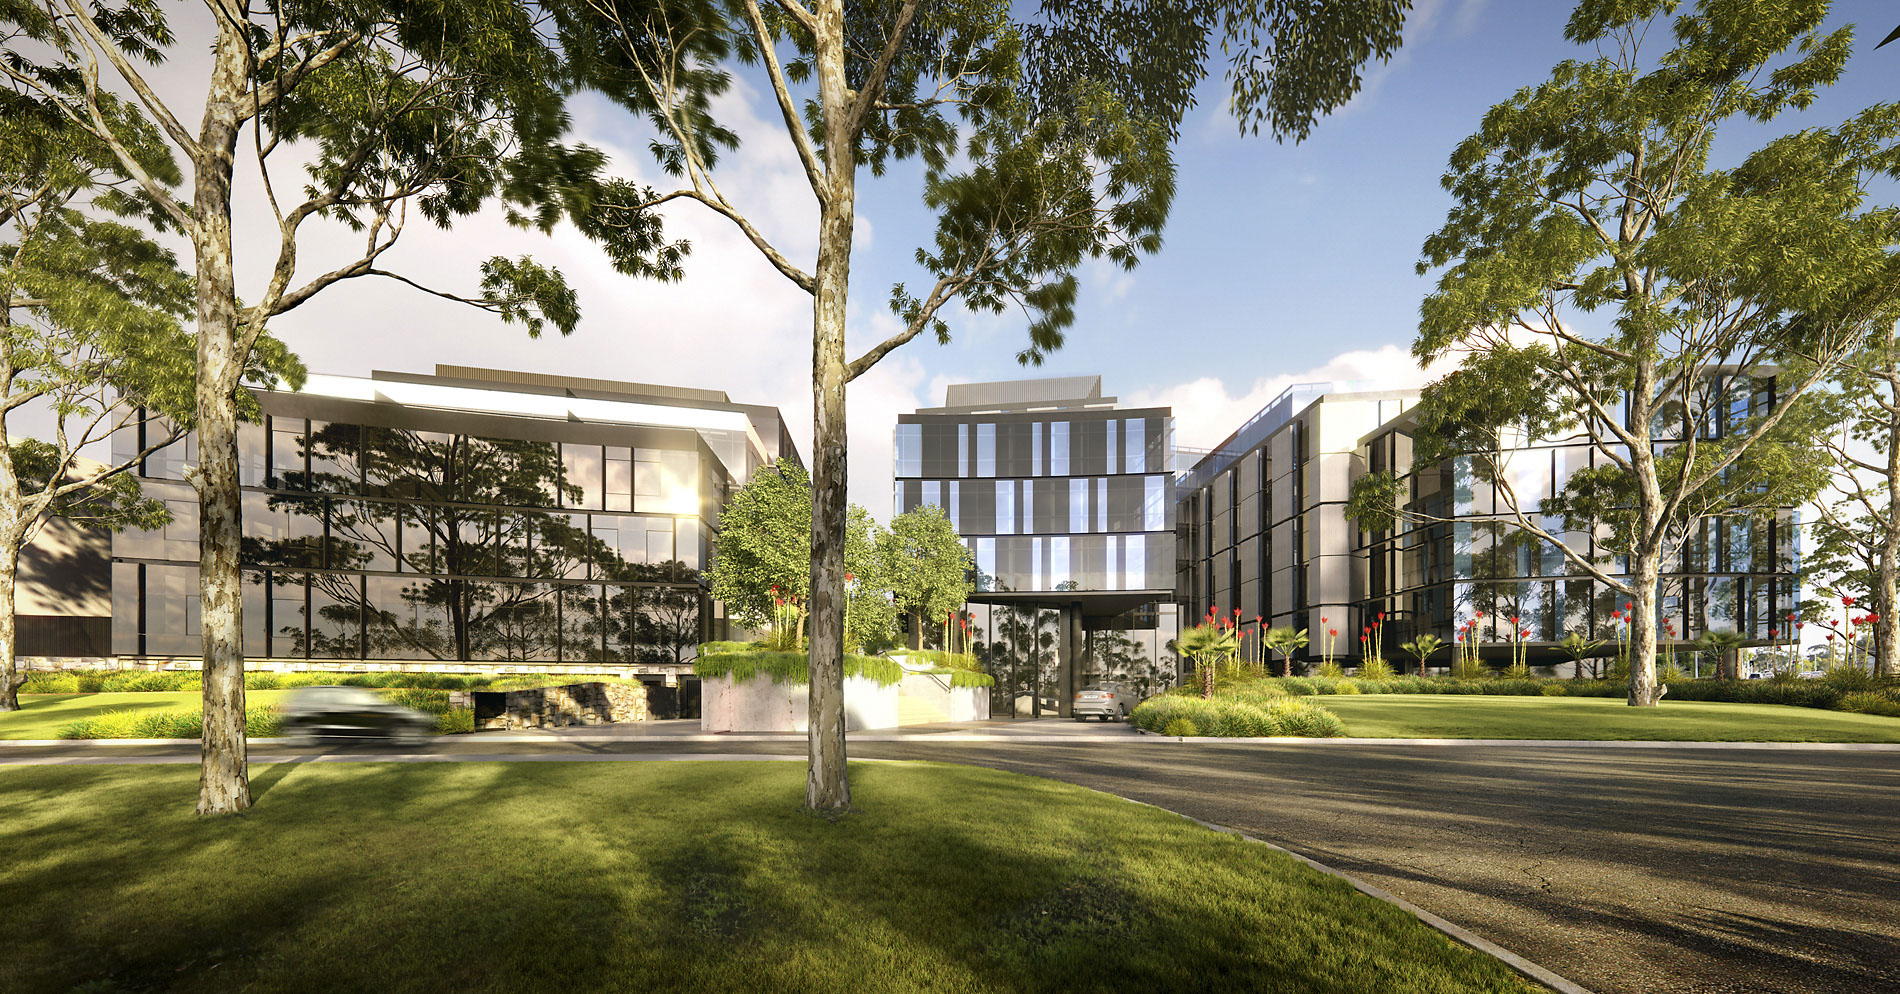 East Edge Botanicca Rothelowman Architecture project